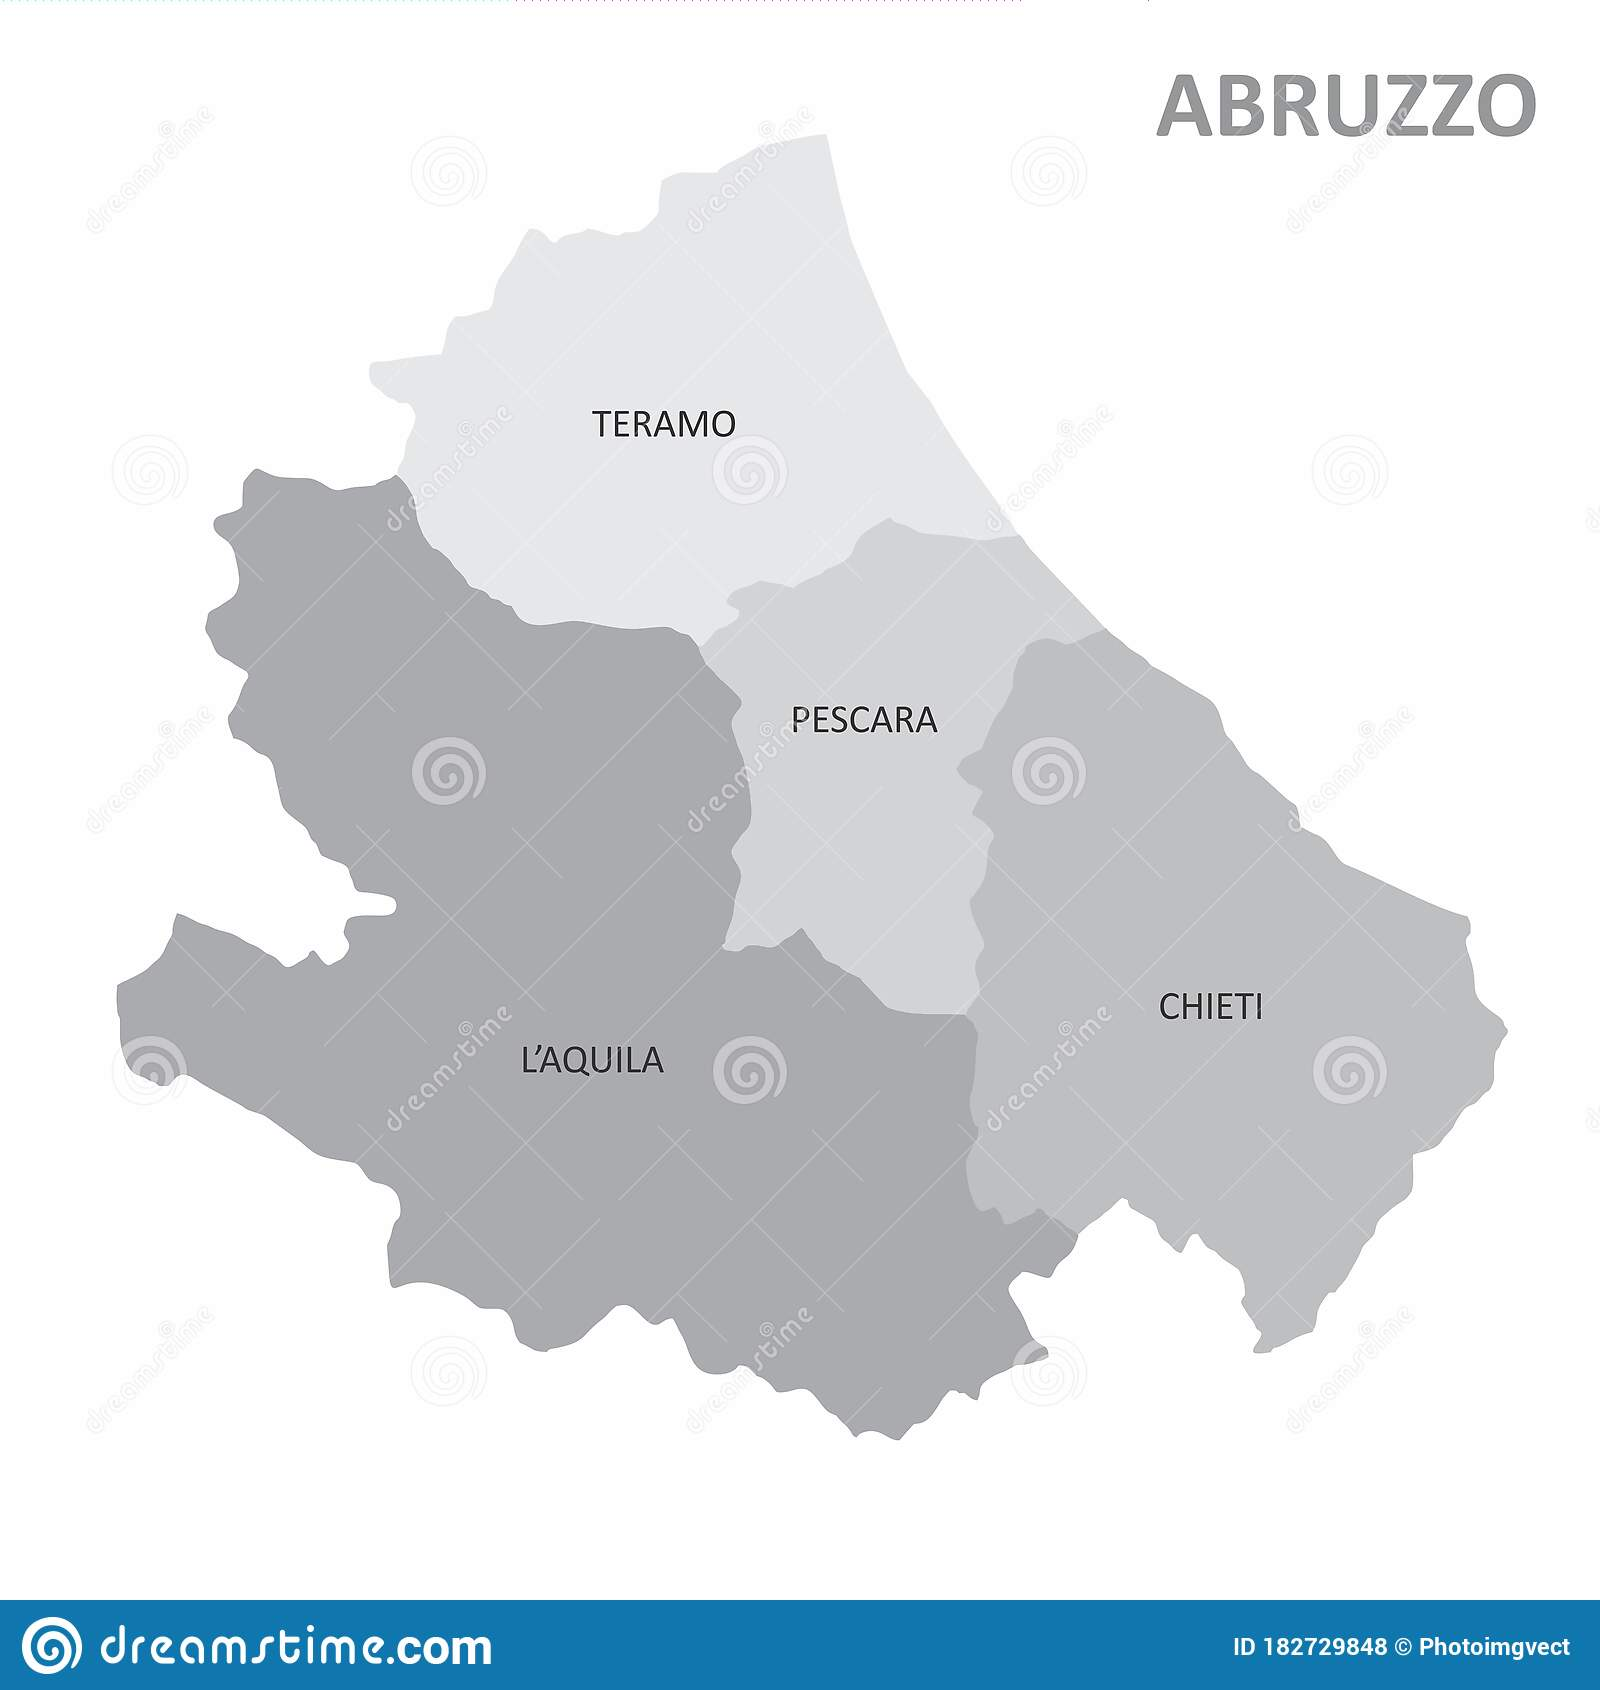 Picture of: Abruzzo Region Map Stock Illustration Illustration Of Part 182729848